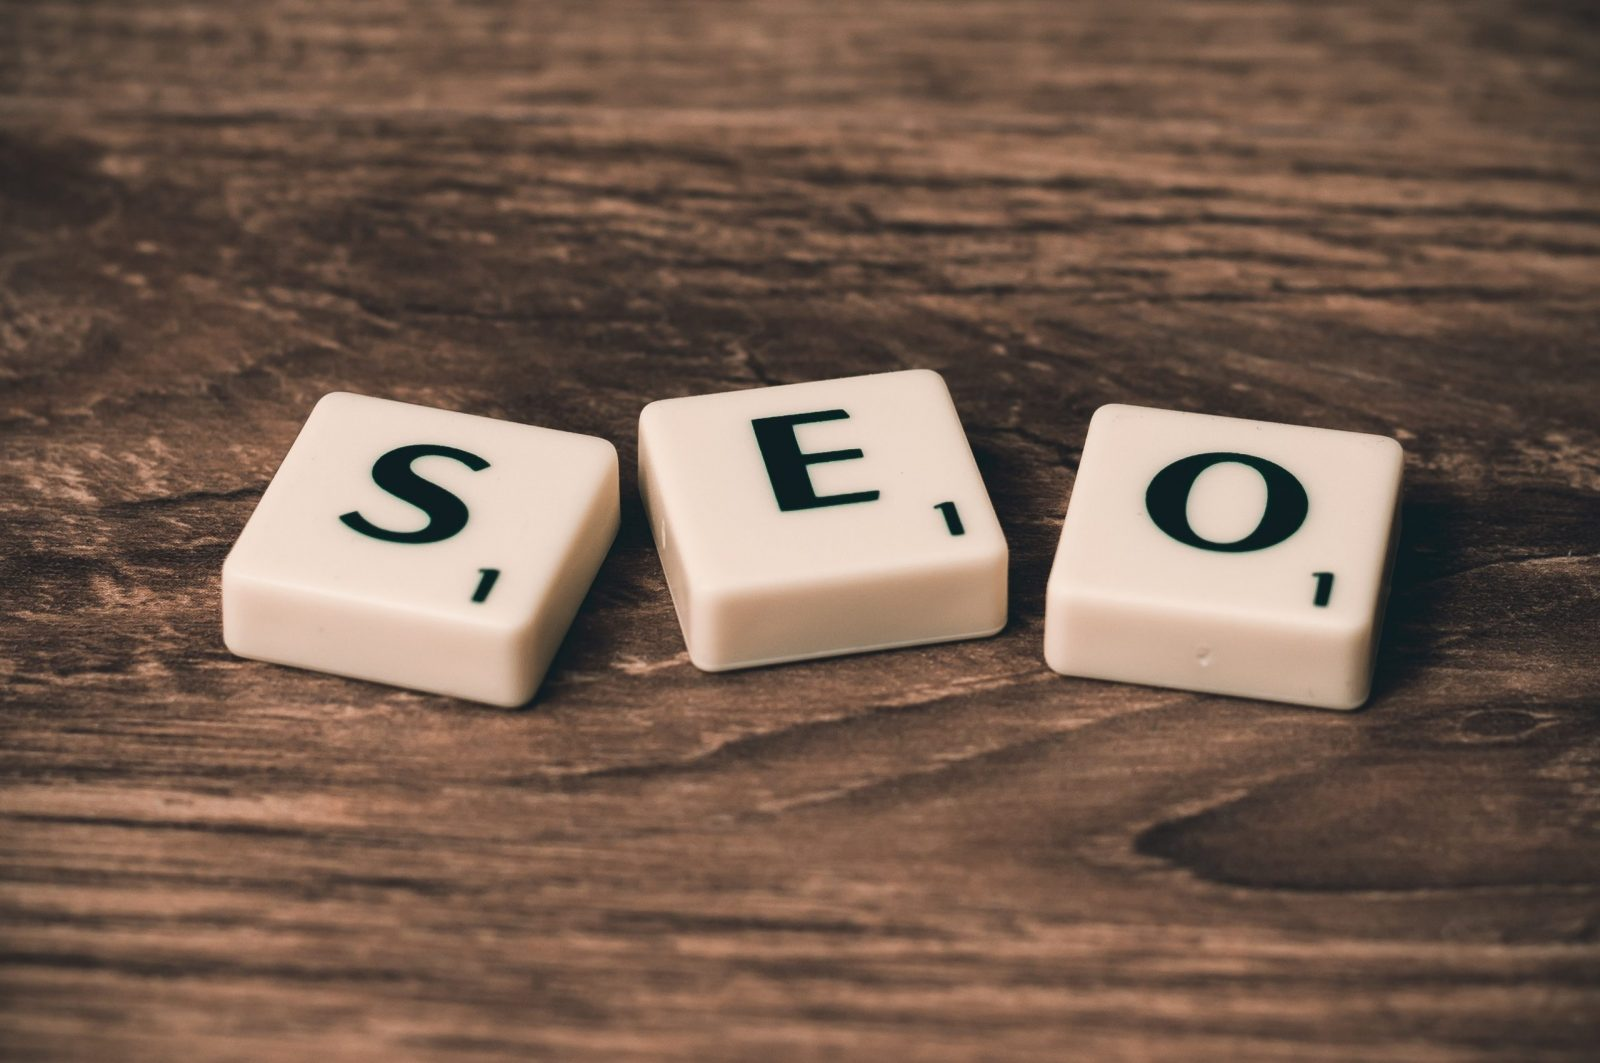 seo search engine optimization keywords search engines